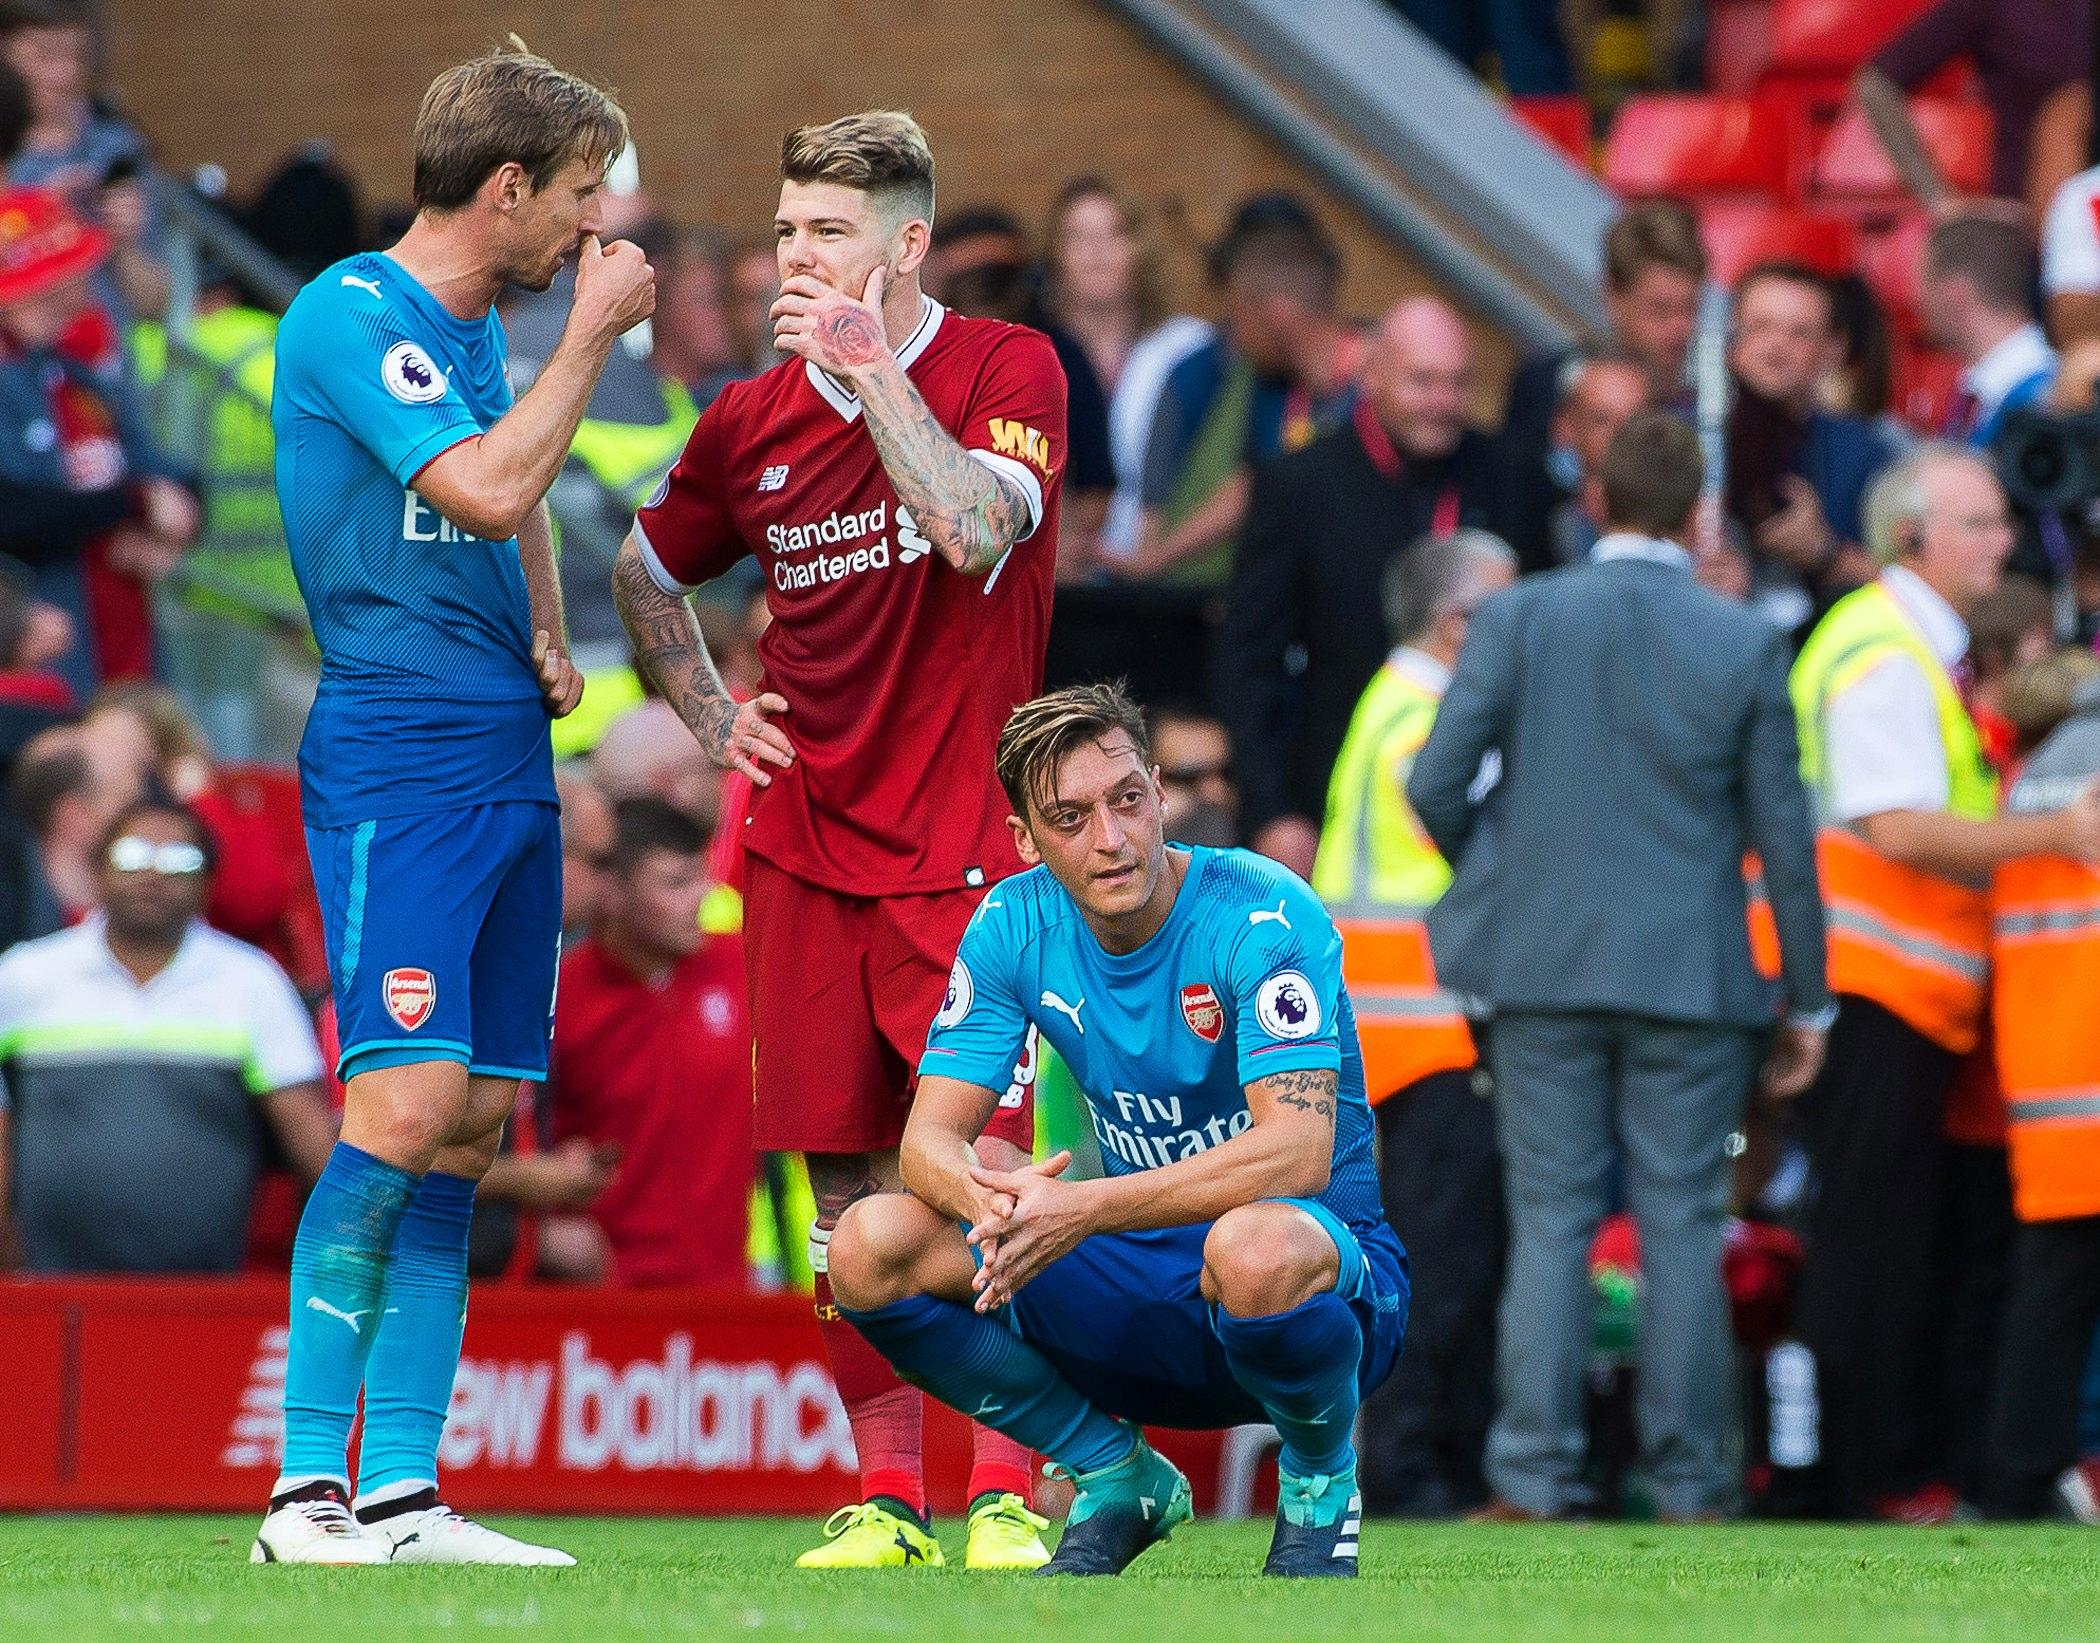 The Gunners took a beating at Anfield… Nacho Monreal just wants a chat though